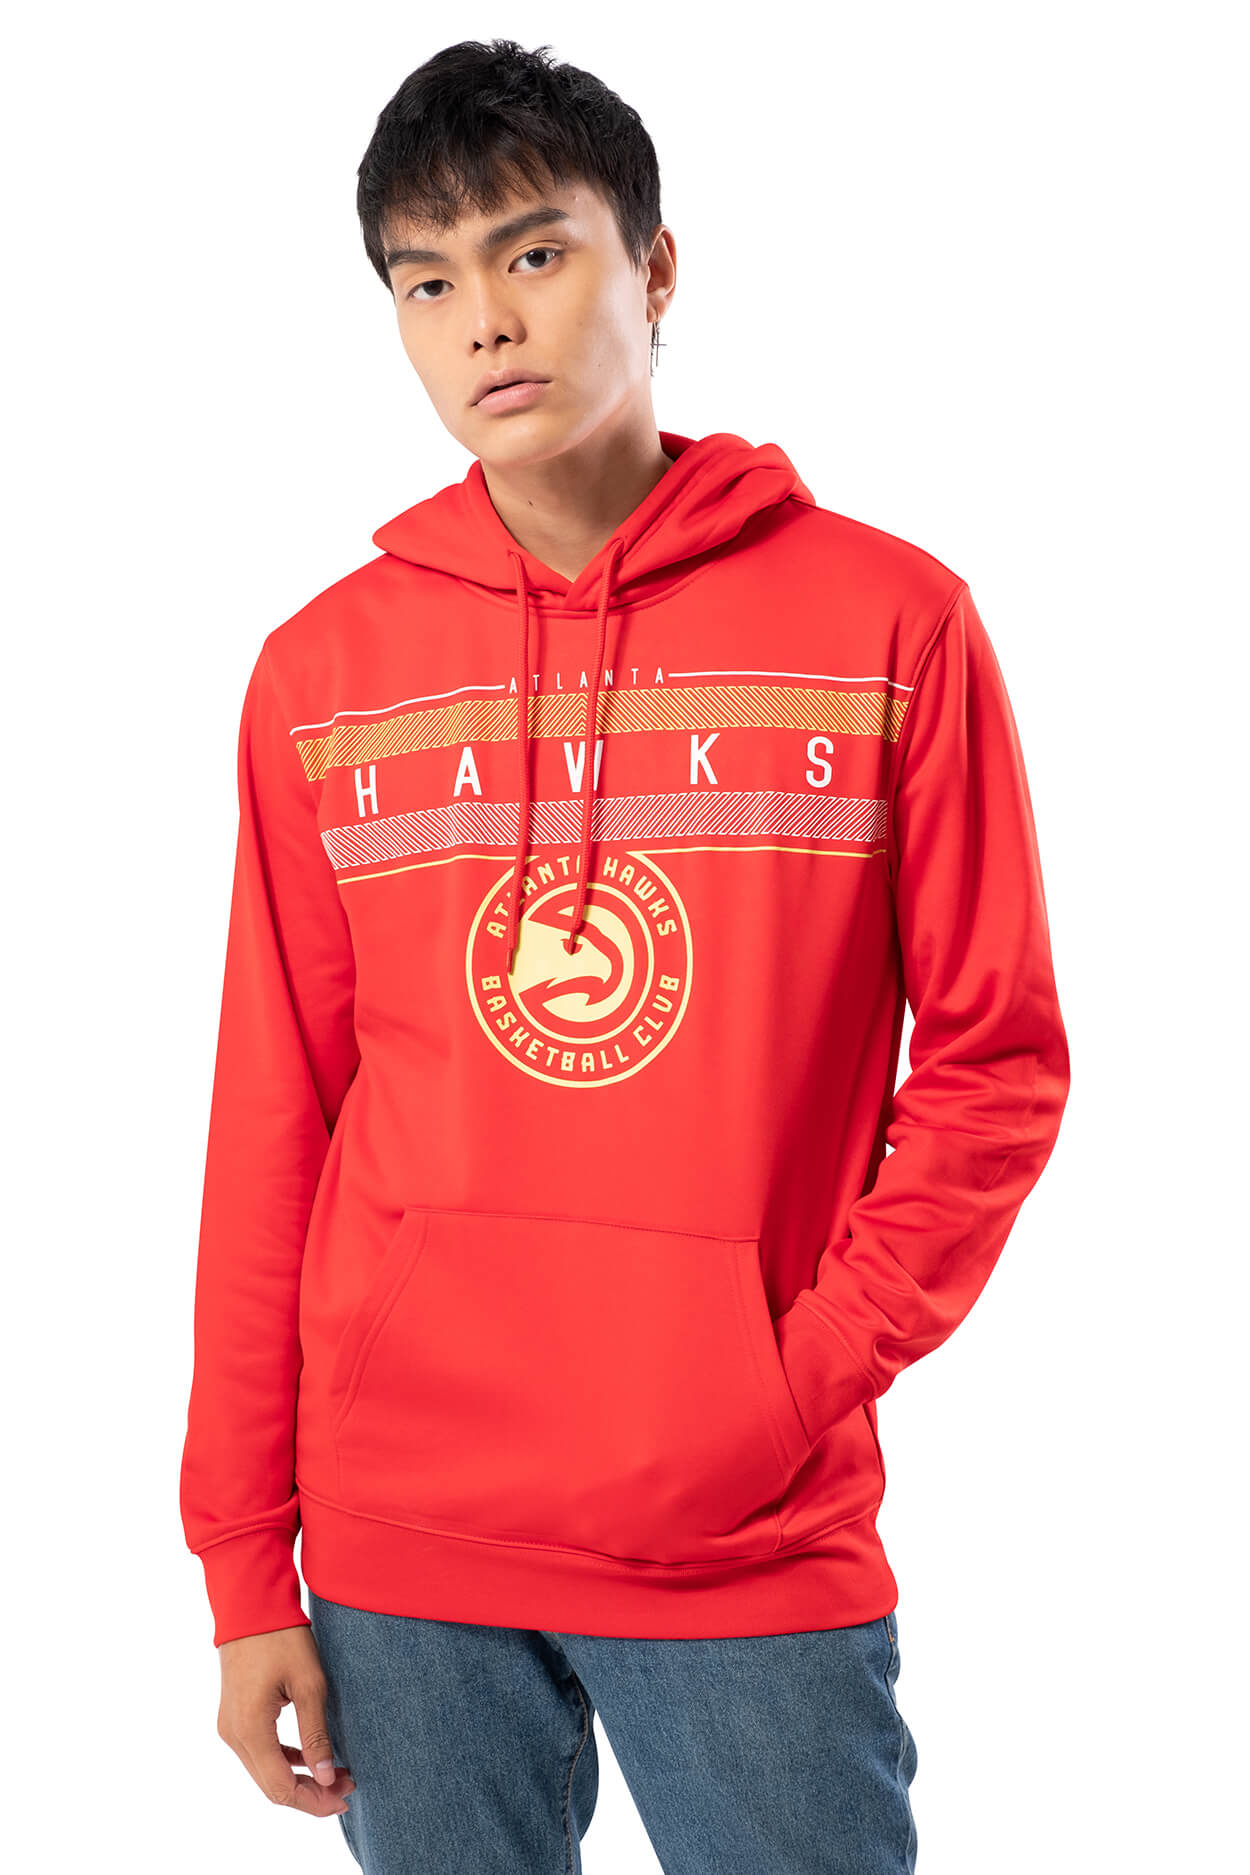 NBA Atlanta Hawks Men's Fleece Hoodie Midtown|Atlanta Hawks